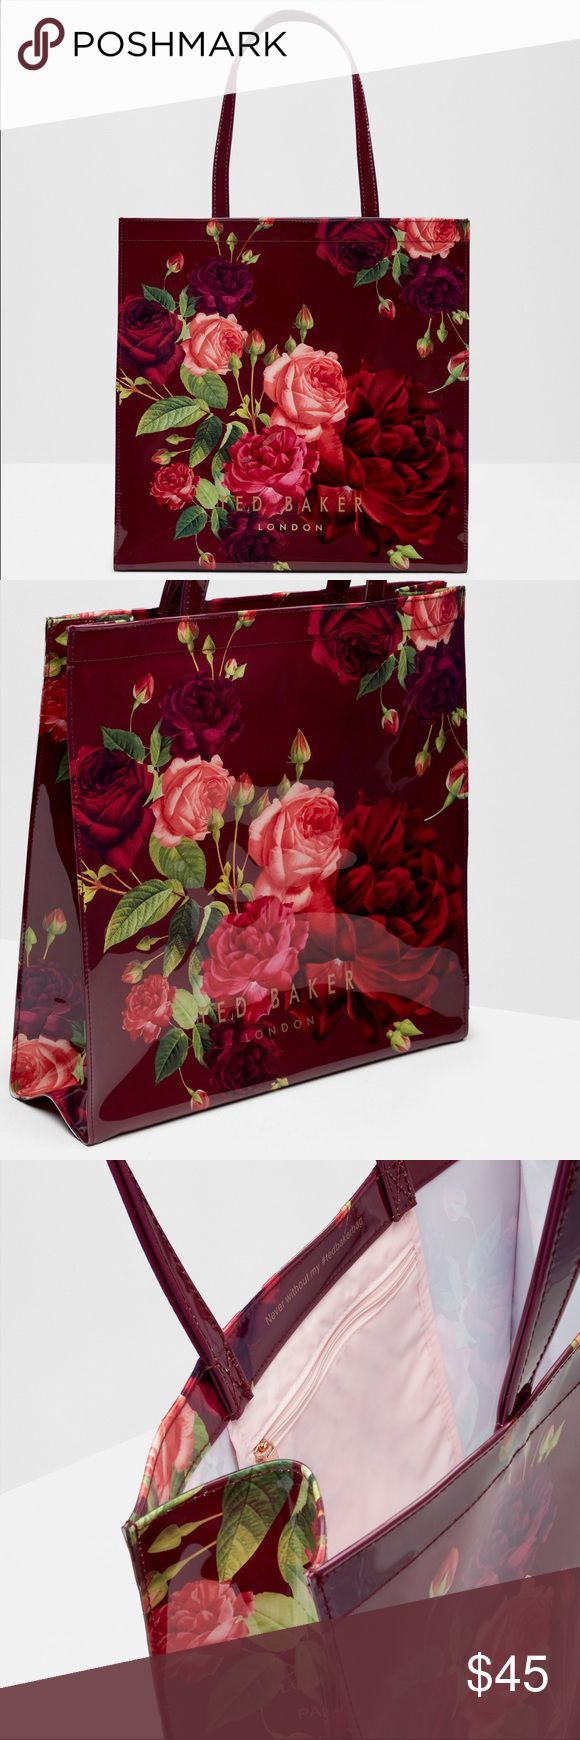 Ted Baker Juxtapose Rose Large Shopper Bag Beautiful & popular print! Used once. Perfect condition! Ted Baker Bags Totes